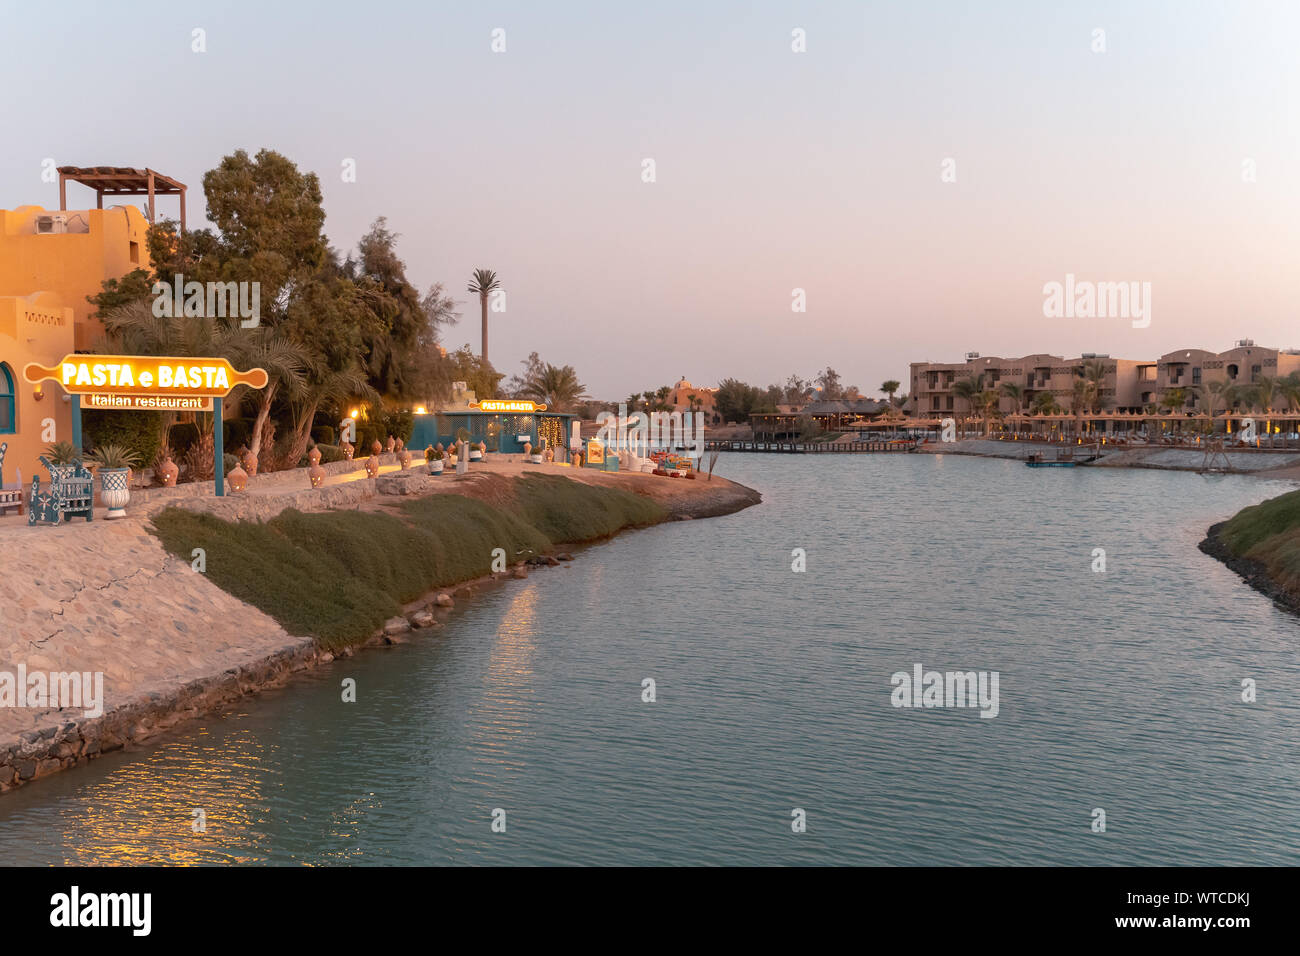 El Gouna Egypt High Resolution Stock Photography And Images Alamy